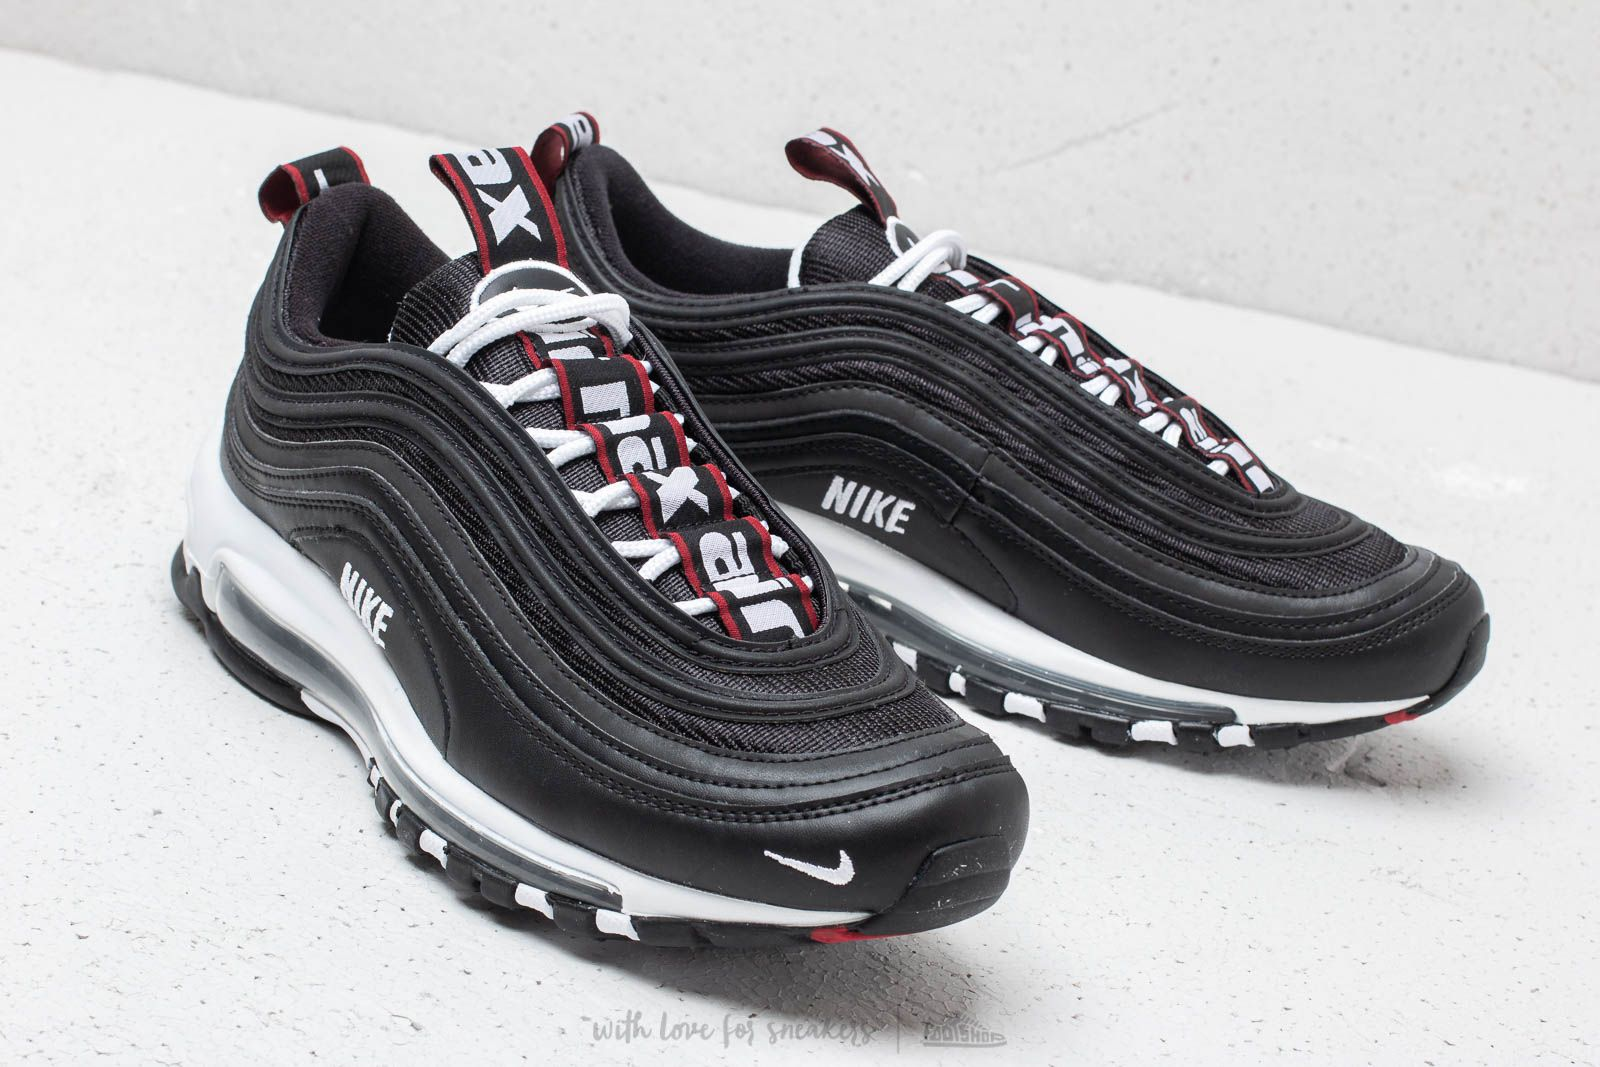 outlet store 0c038 00fed Nike Air Max 97 Premium Black/ White/ Varsity Red | Footshop